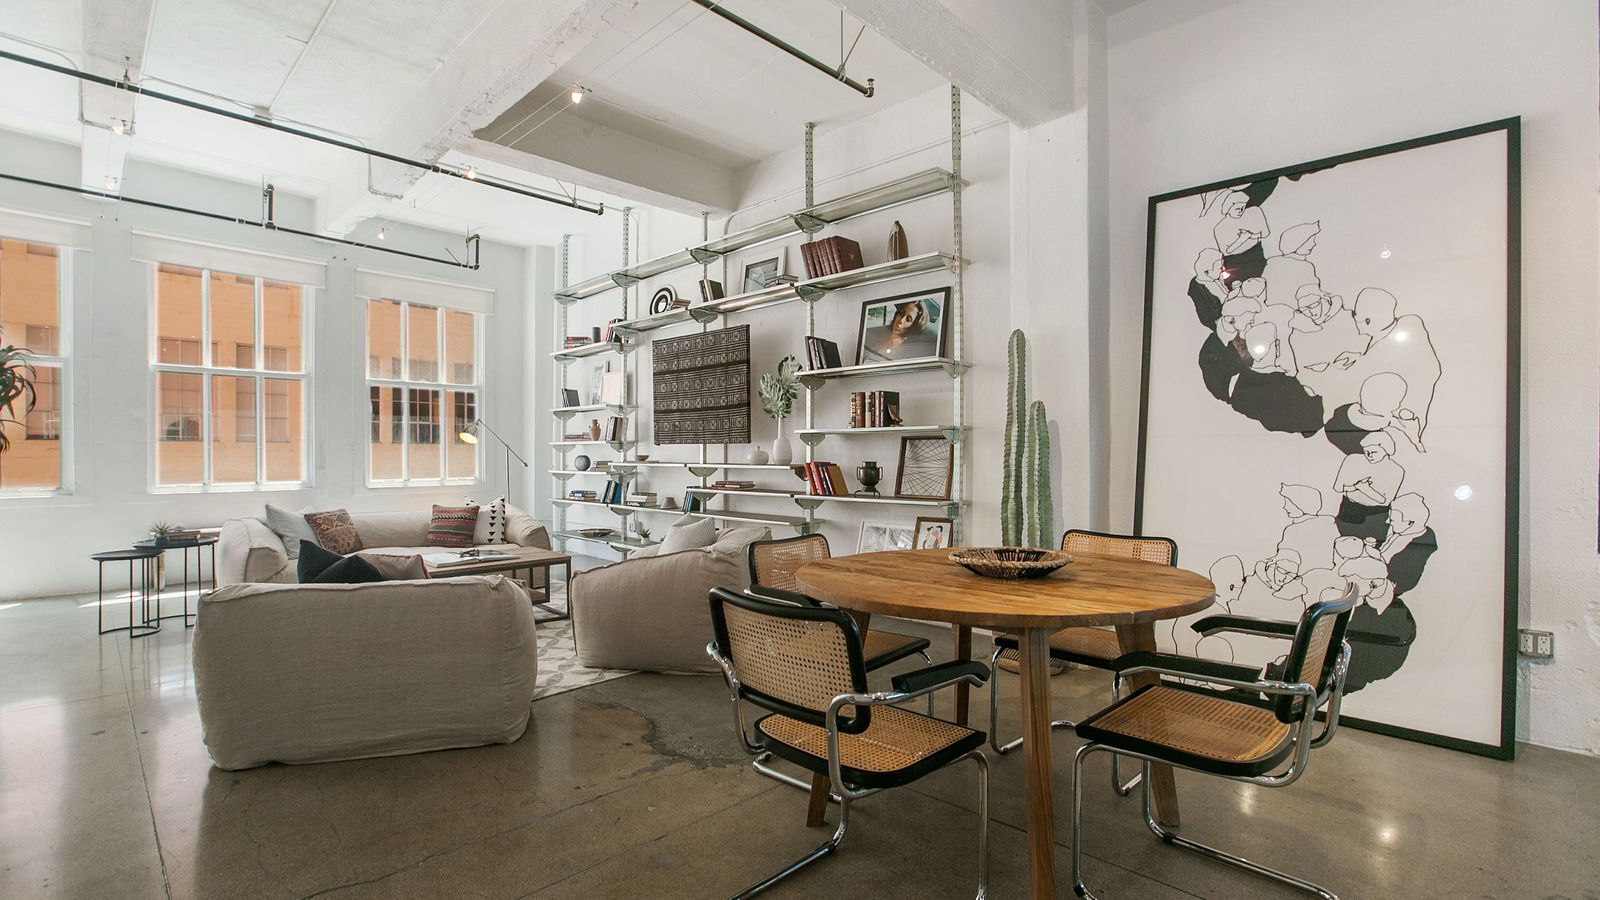 Used Kitchen Cabinets York Region Bright Fashion District Loft Asks 500k Curbed La